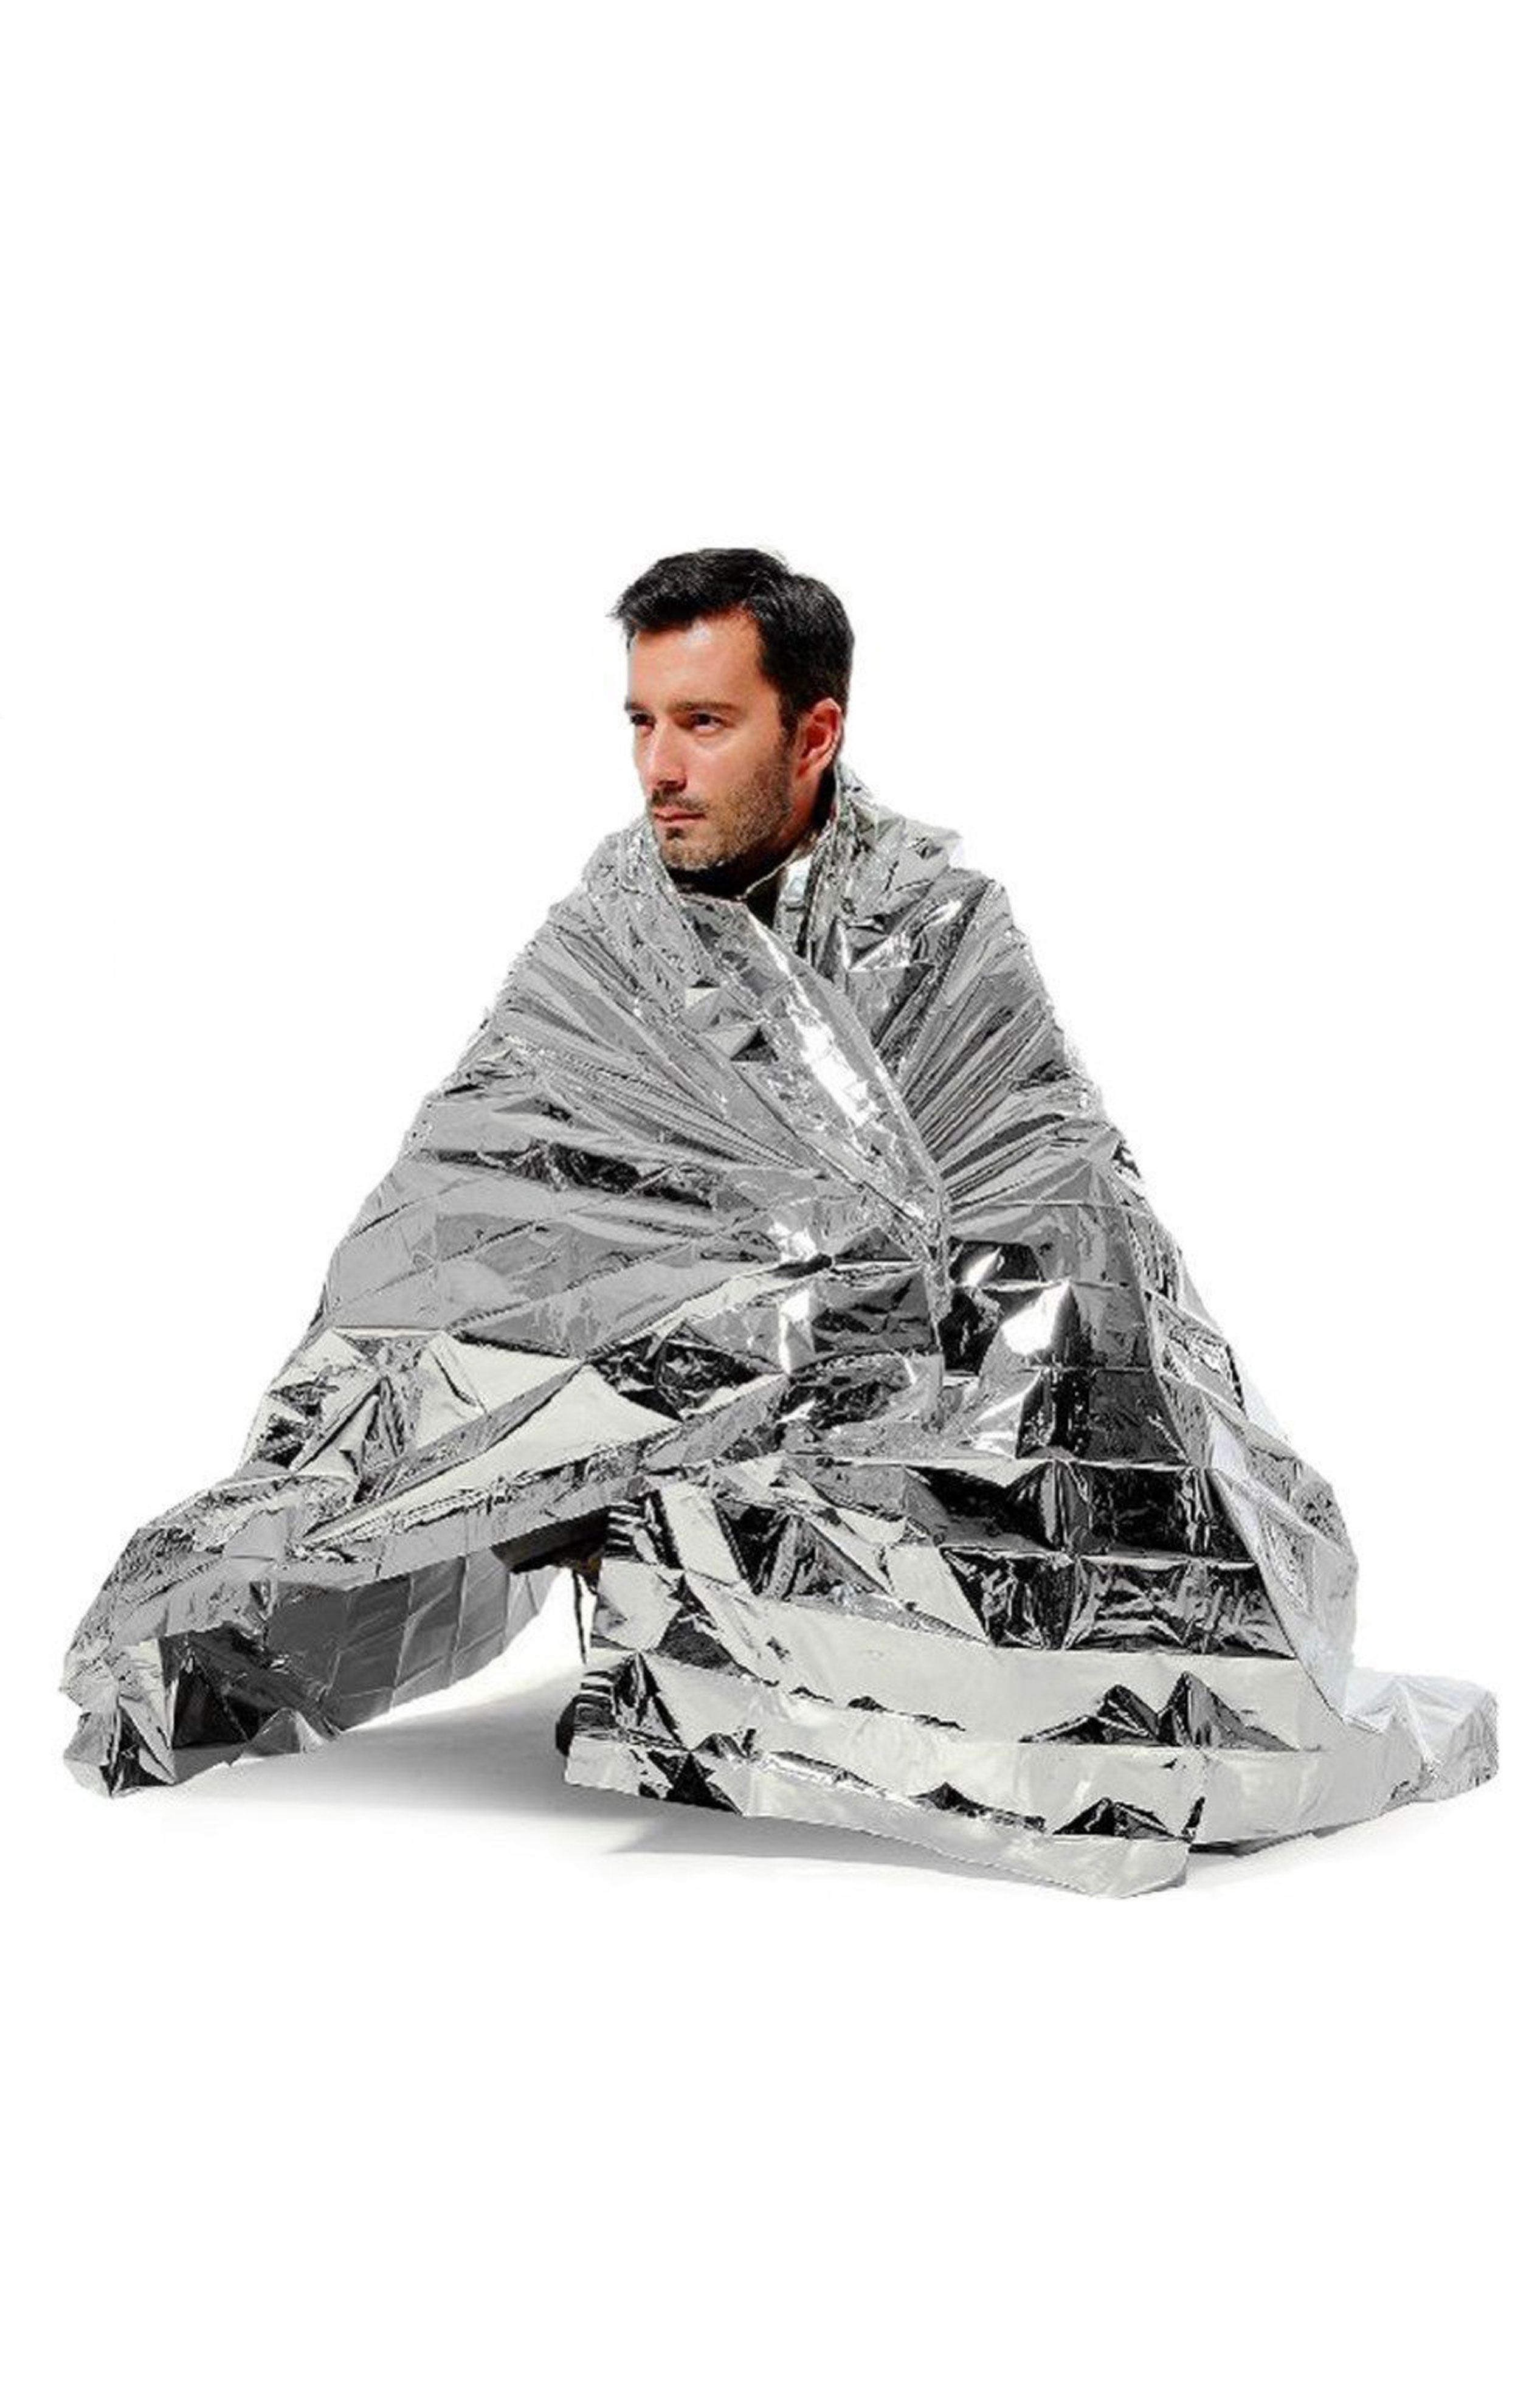 Survival Foil Blanket Emergency First Aid Rescue Thermal Waterproof Outdoor Hot